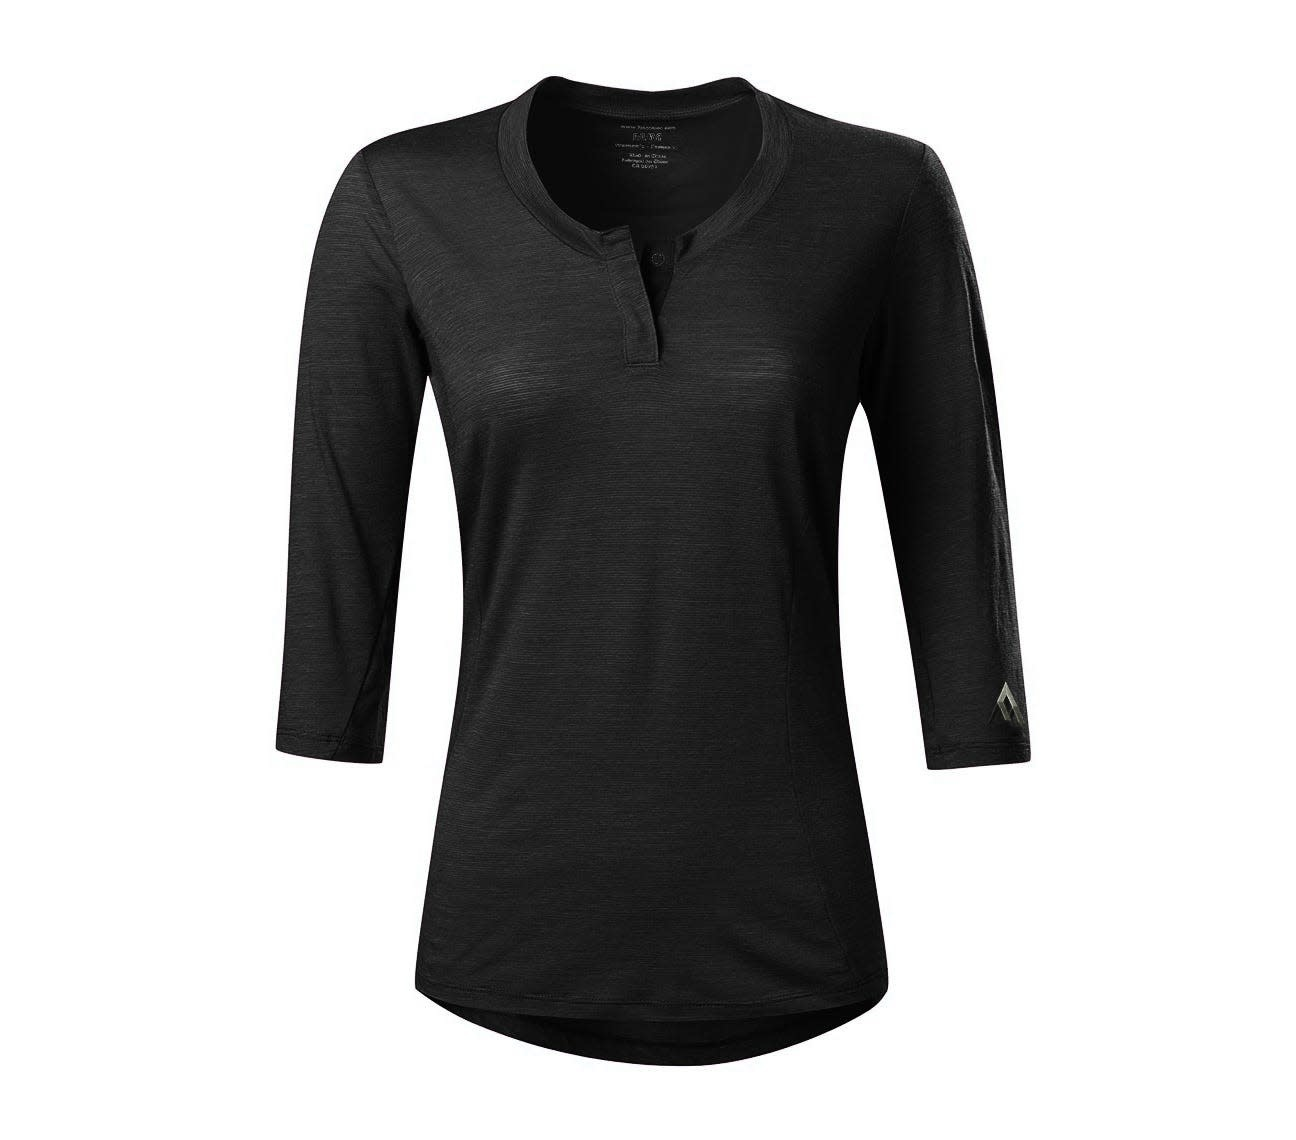 7 Mesh, Desperado Henley, Women's, Black (SM)